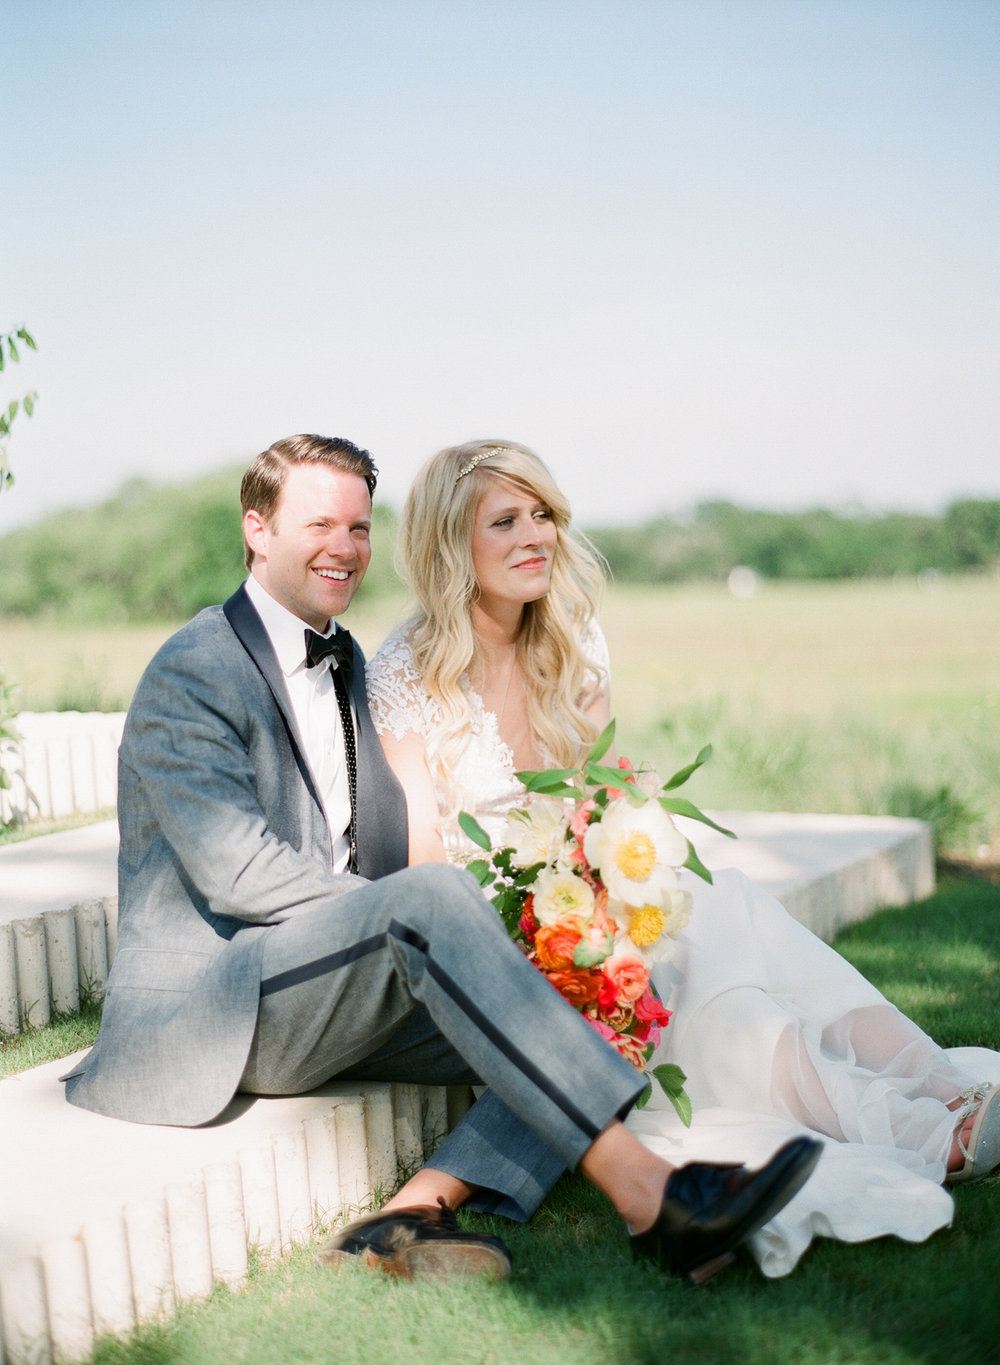 PROSPECT_HOUSE_WEDDING_AUSTIN_TX_BY_MATTHEW_MOORE_PHOTOGRAPHY_00123.jpg